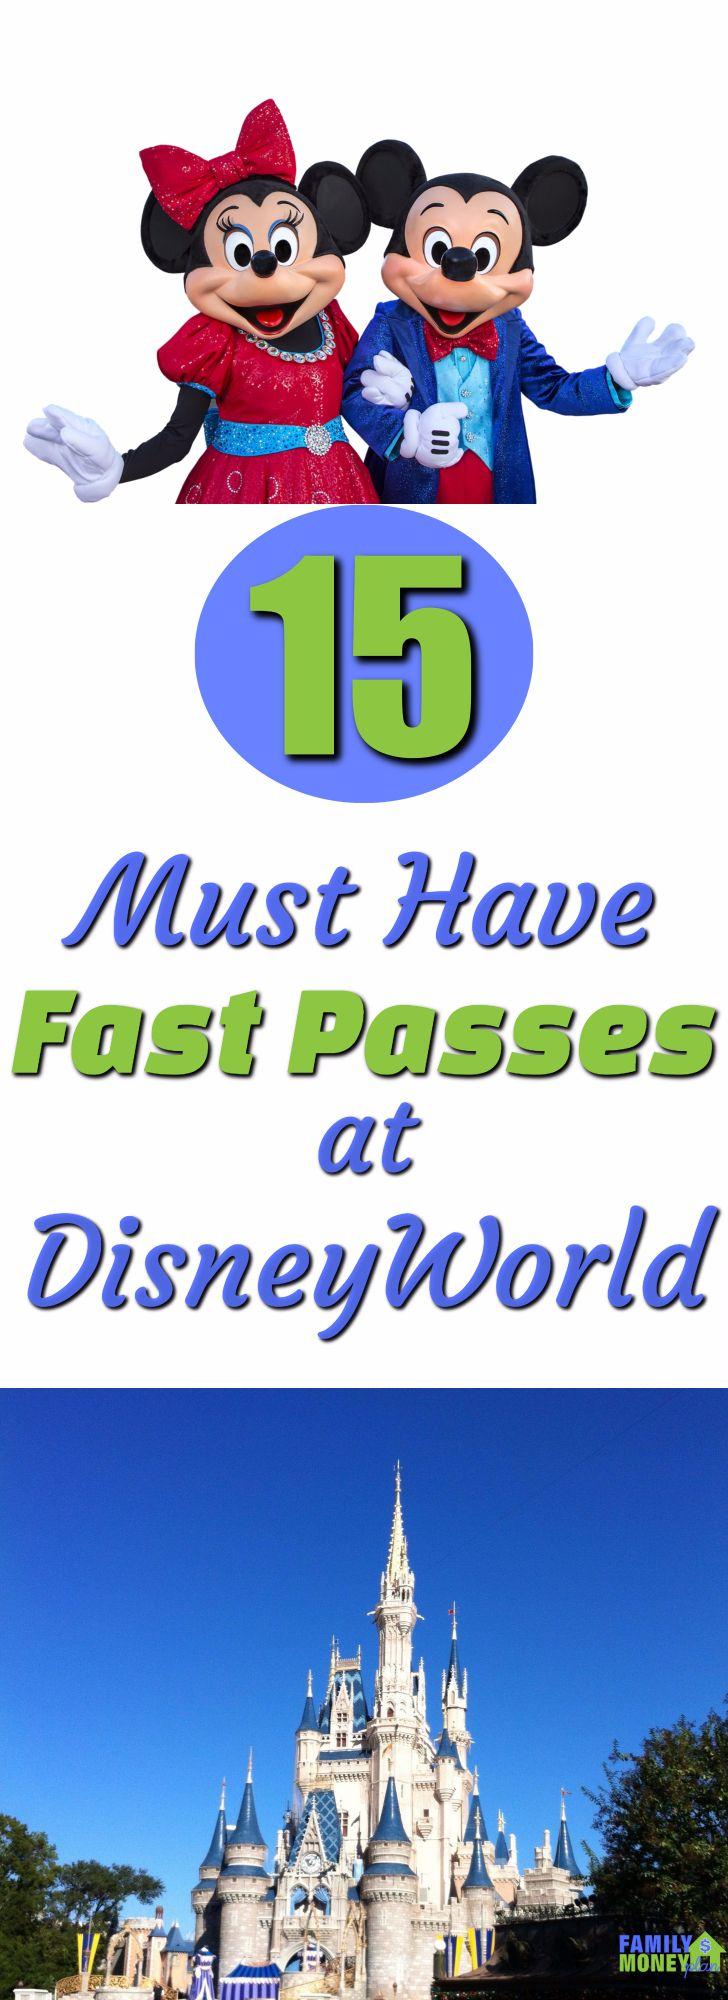 Disney worlds fast pass system is a huge time saver. But you need to know which ones you should book before you get to the park. Here are the top 15 rides to book at Walt Disney World. | Disney World | Fast Pass | Magic Kingdom Rides | Epcot |Animal Kingdom | Hollywood Studios |